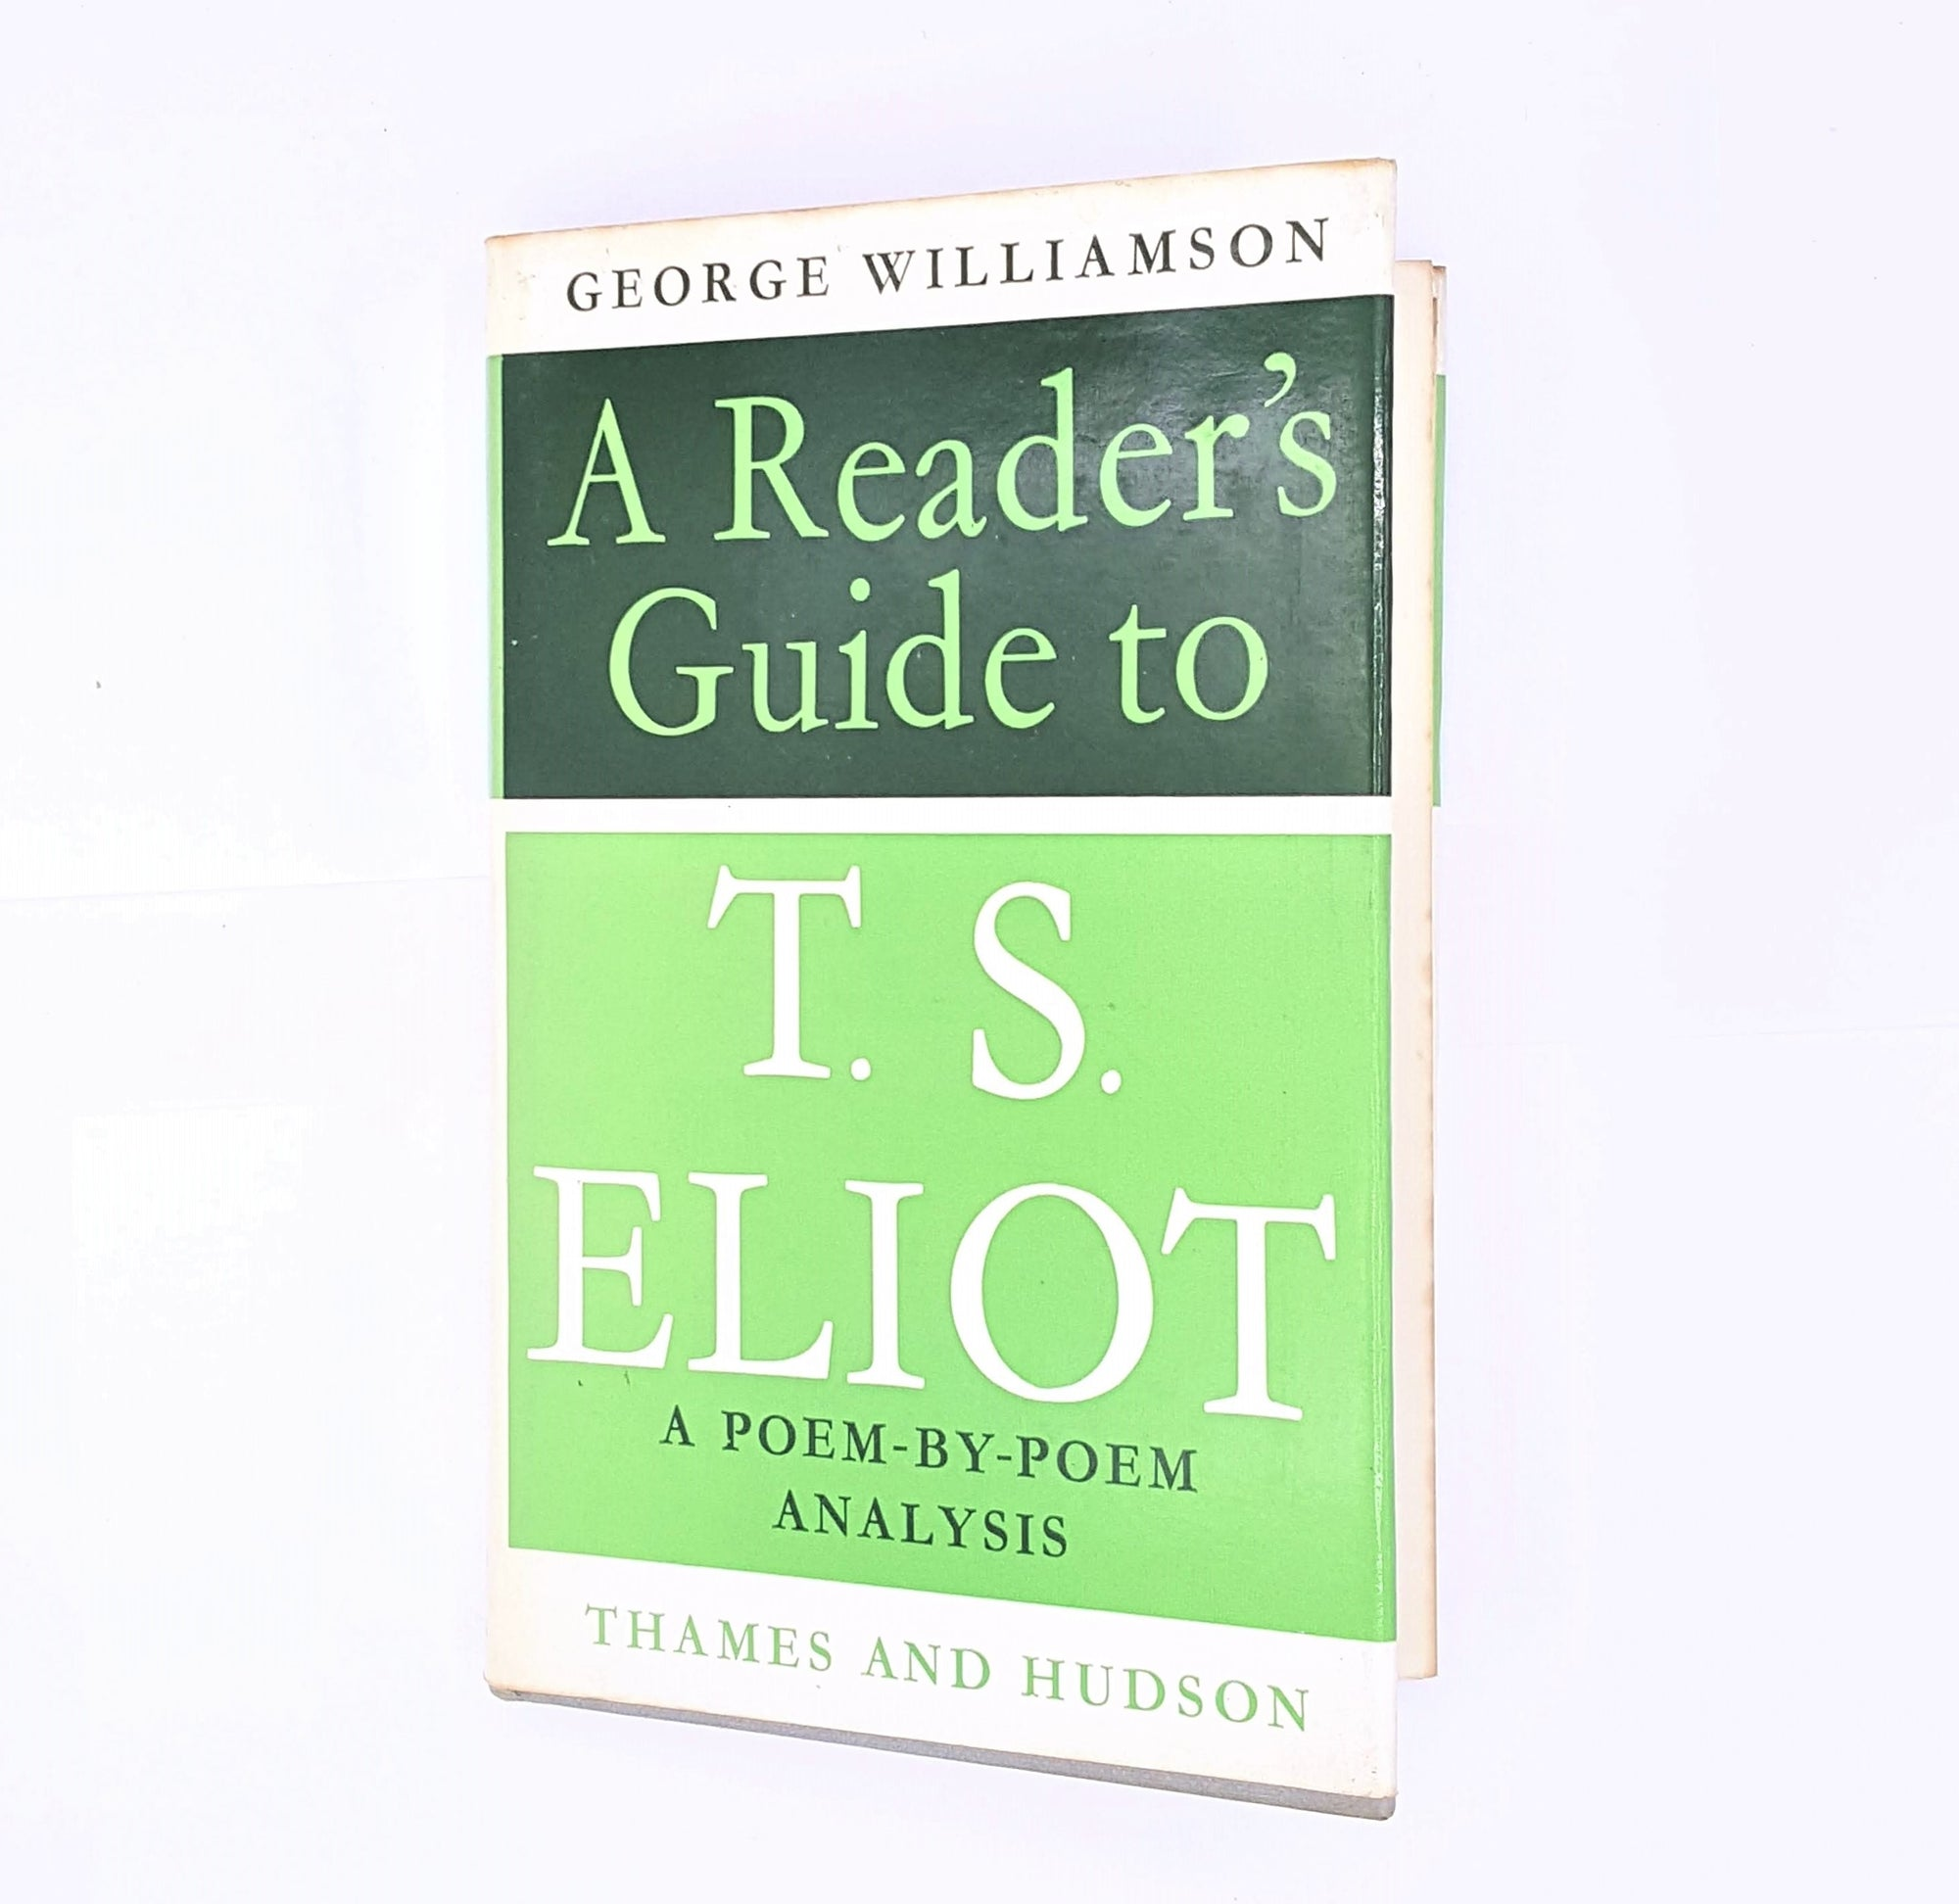 analysis-poetry-tseliot-thrift-books-vintage-country-house-library-patterned-decorative-old-t.s.eliot